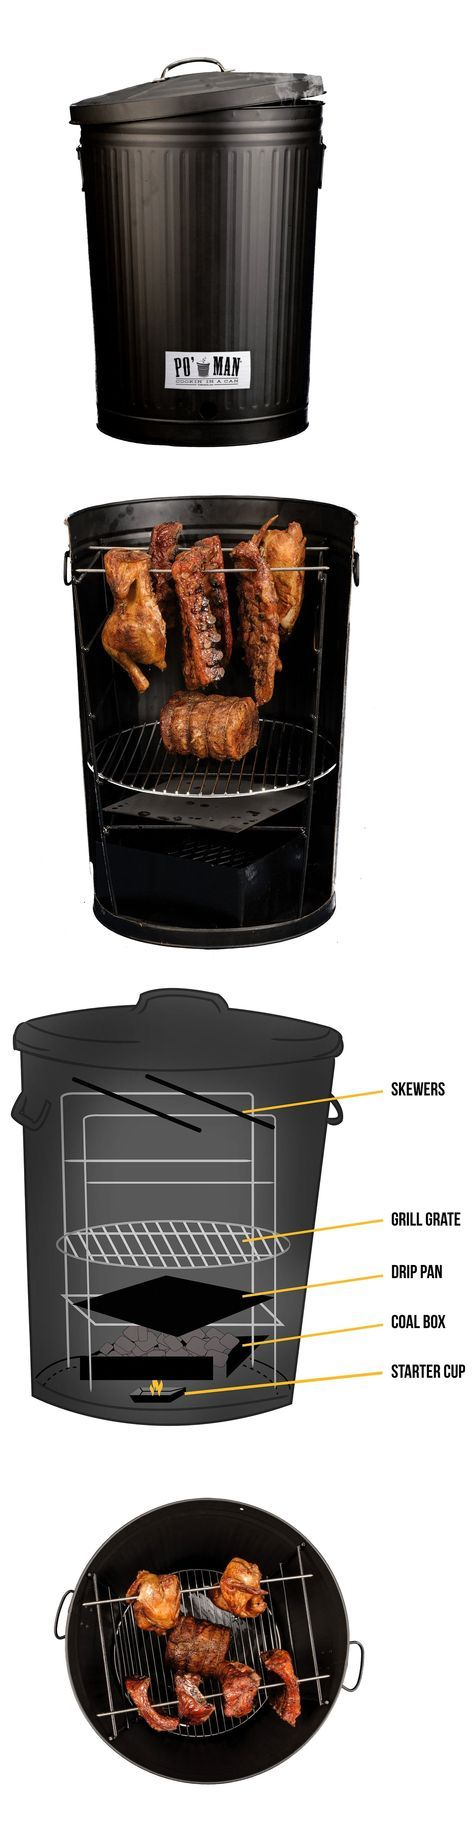 66 best homemade bbq images on pinterest barbecue grill smokers